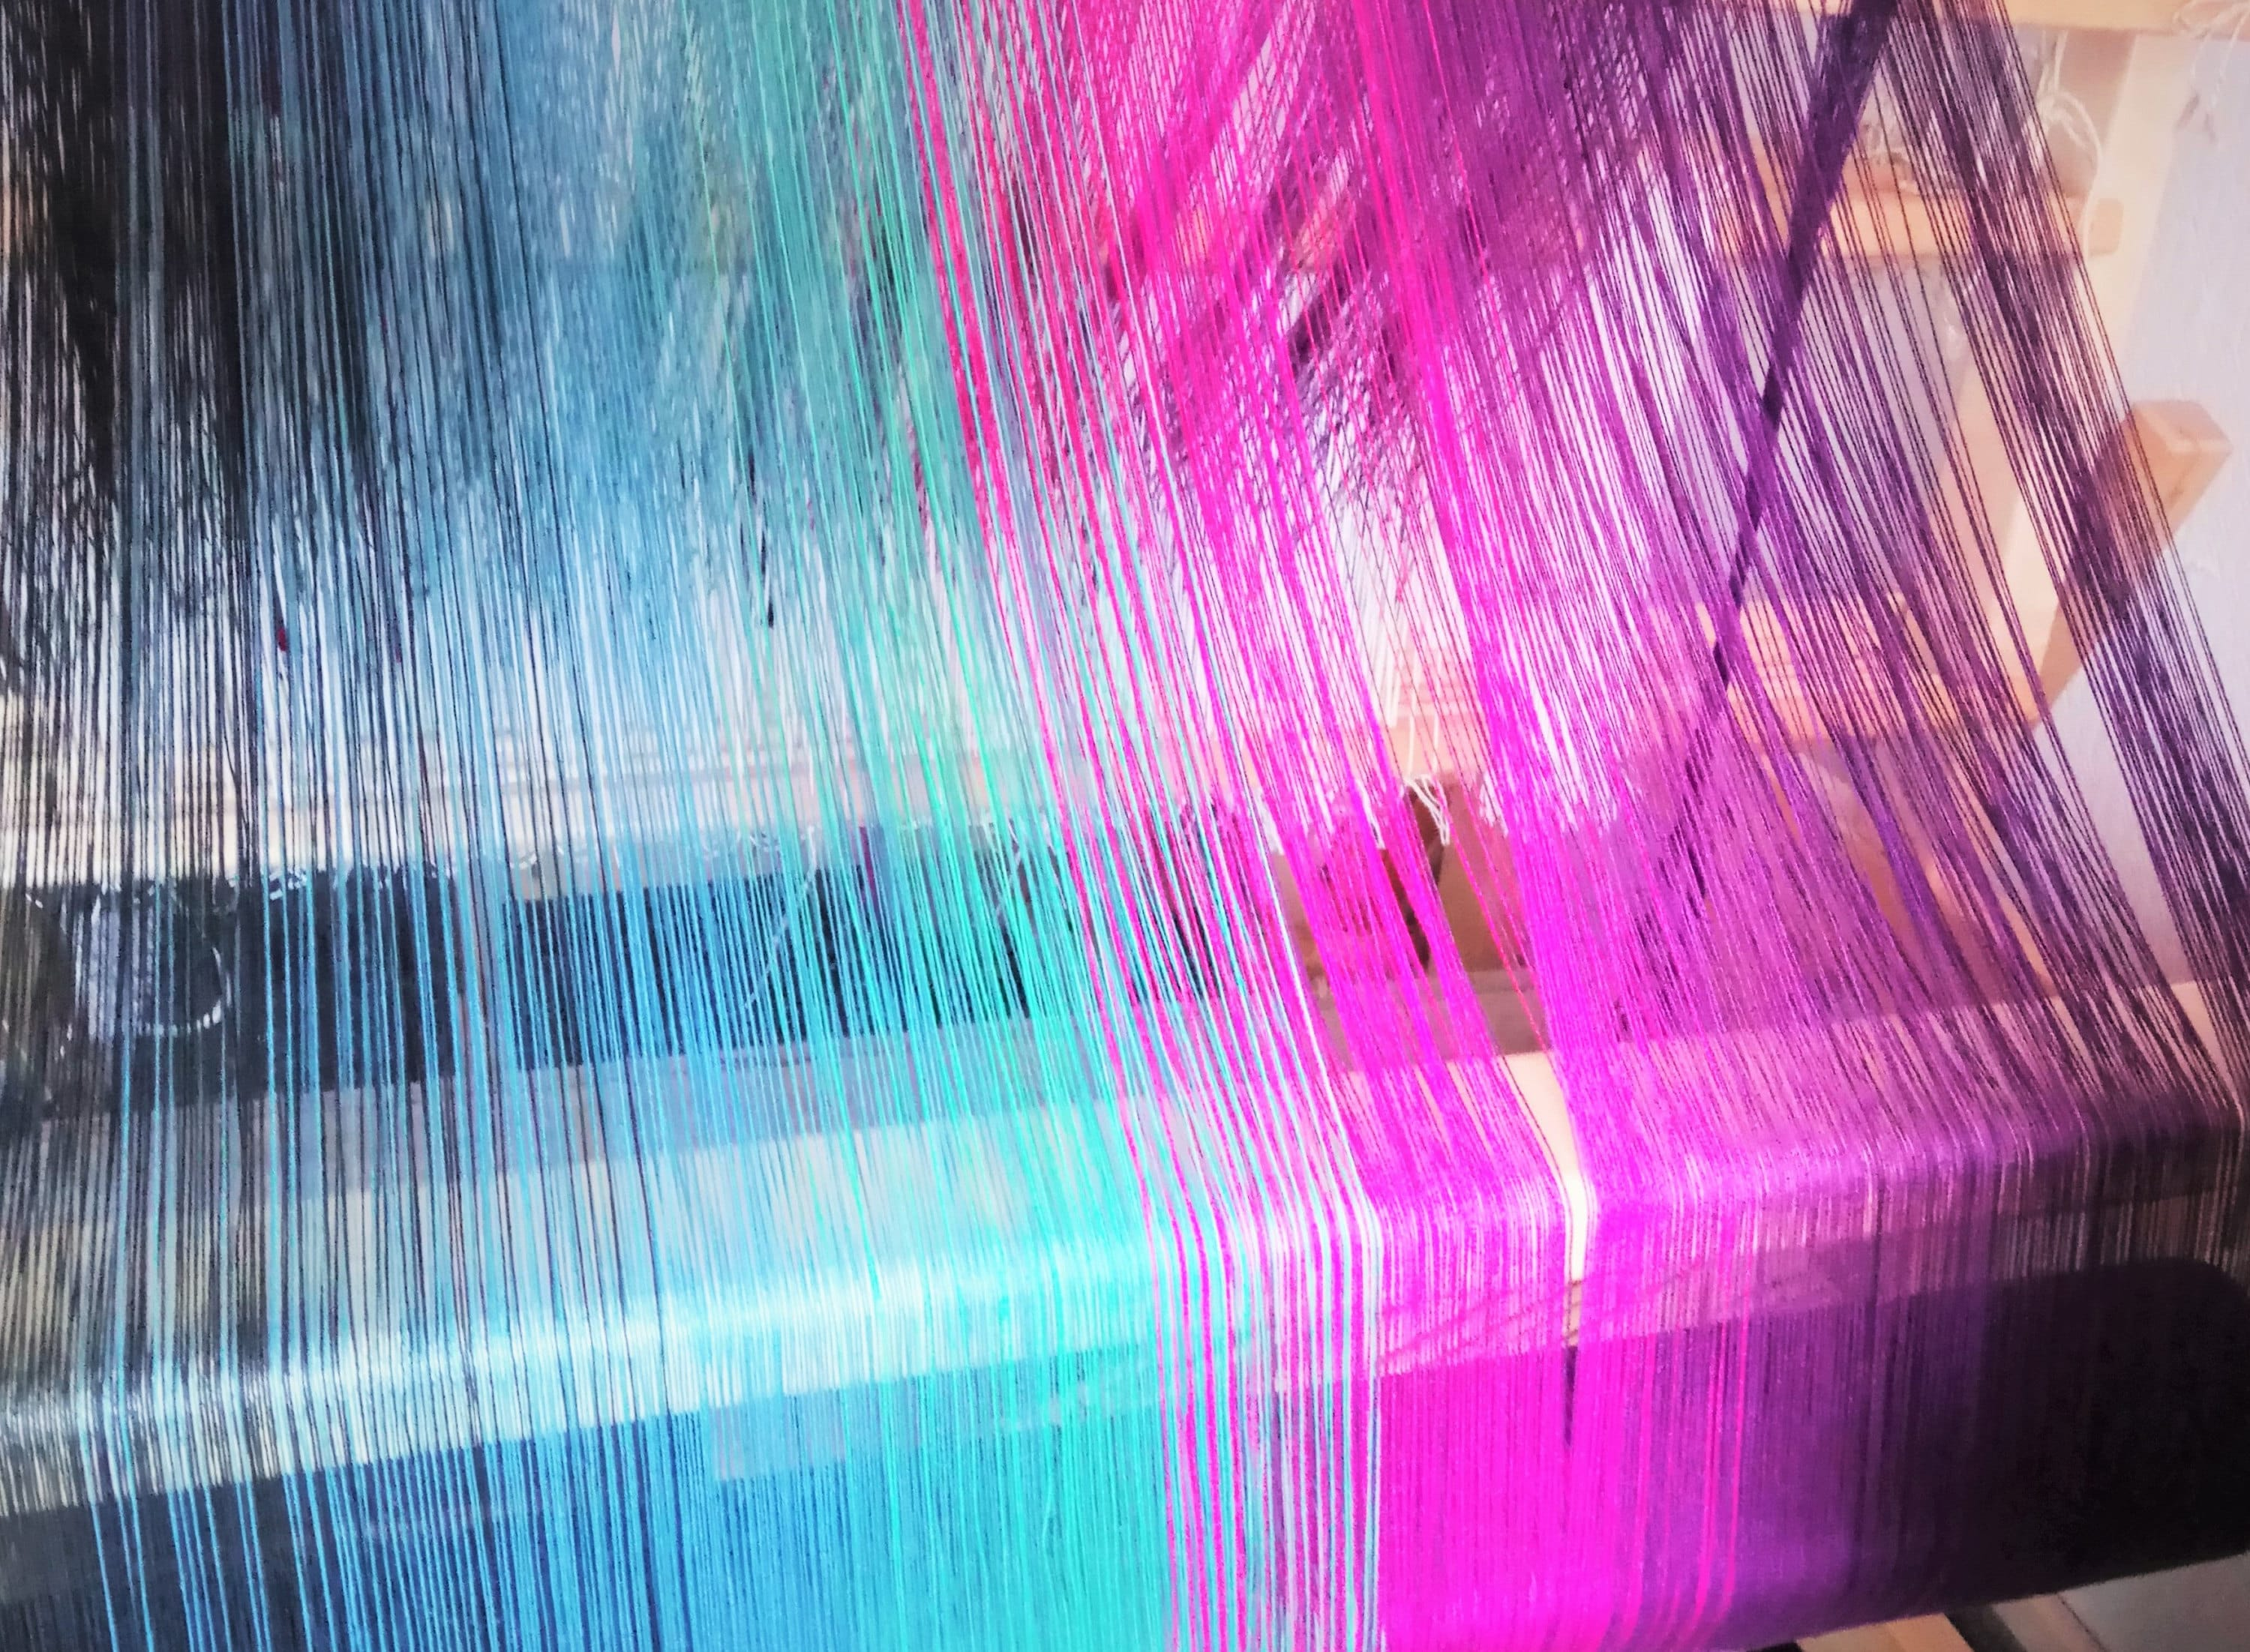 beaming on the loom